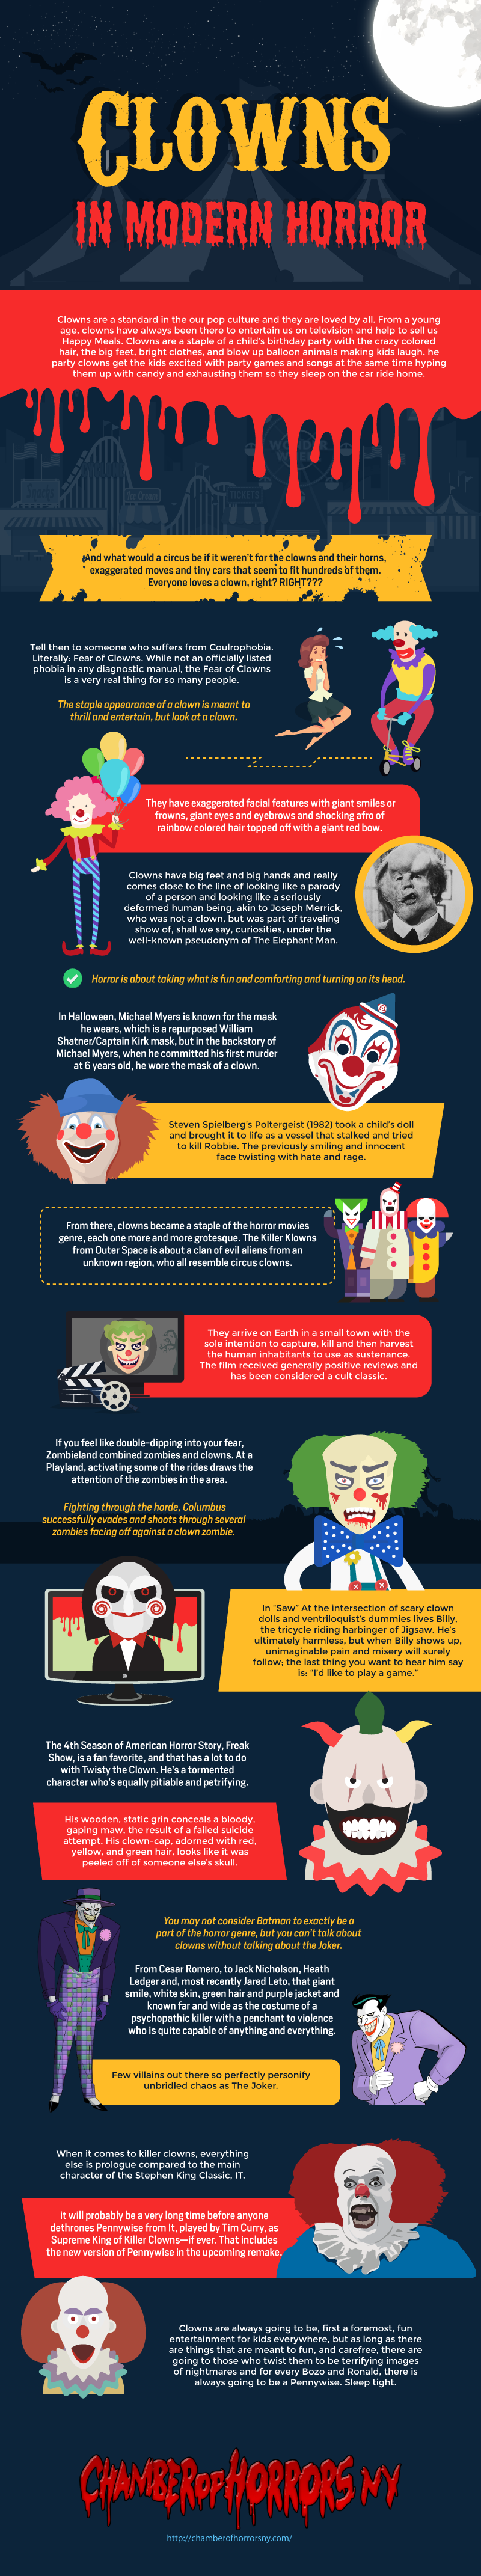 Clowns: The Scariest In The Modern World? - Infographic